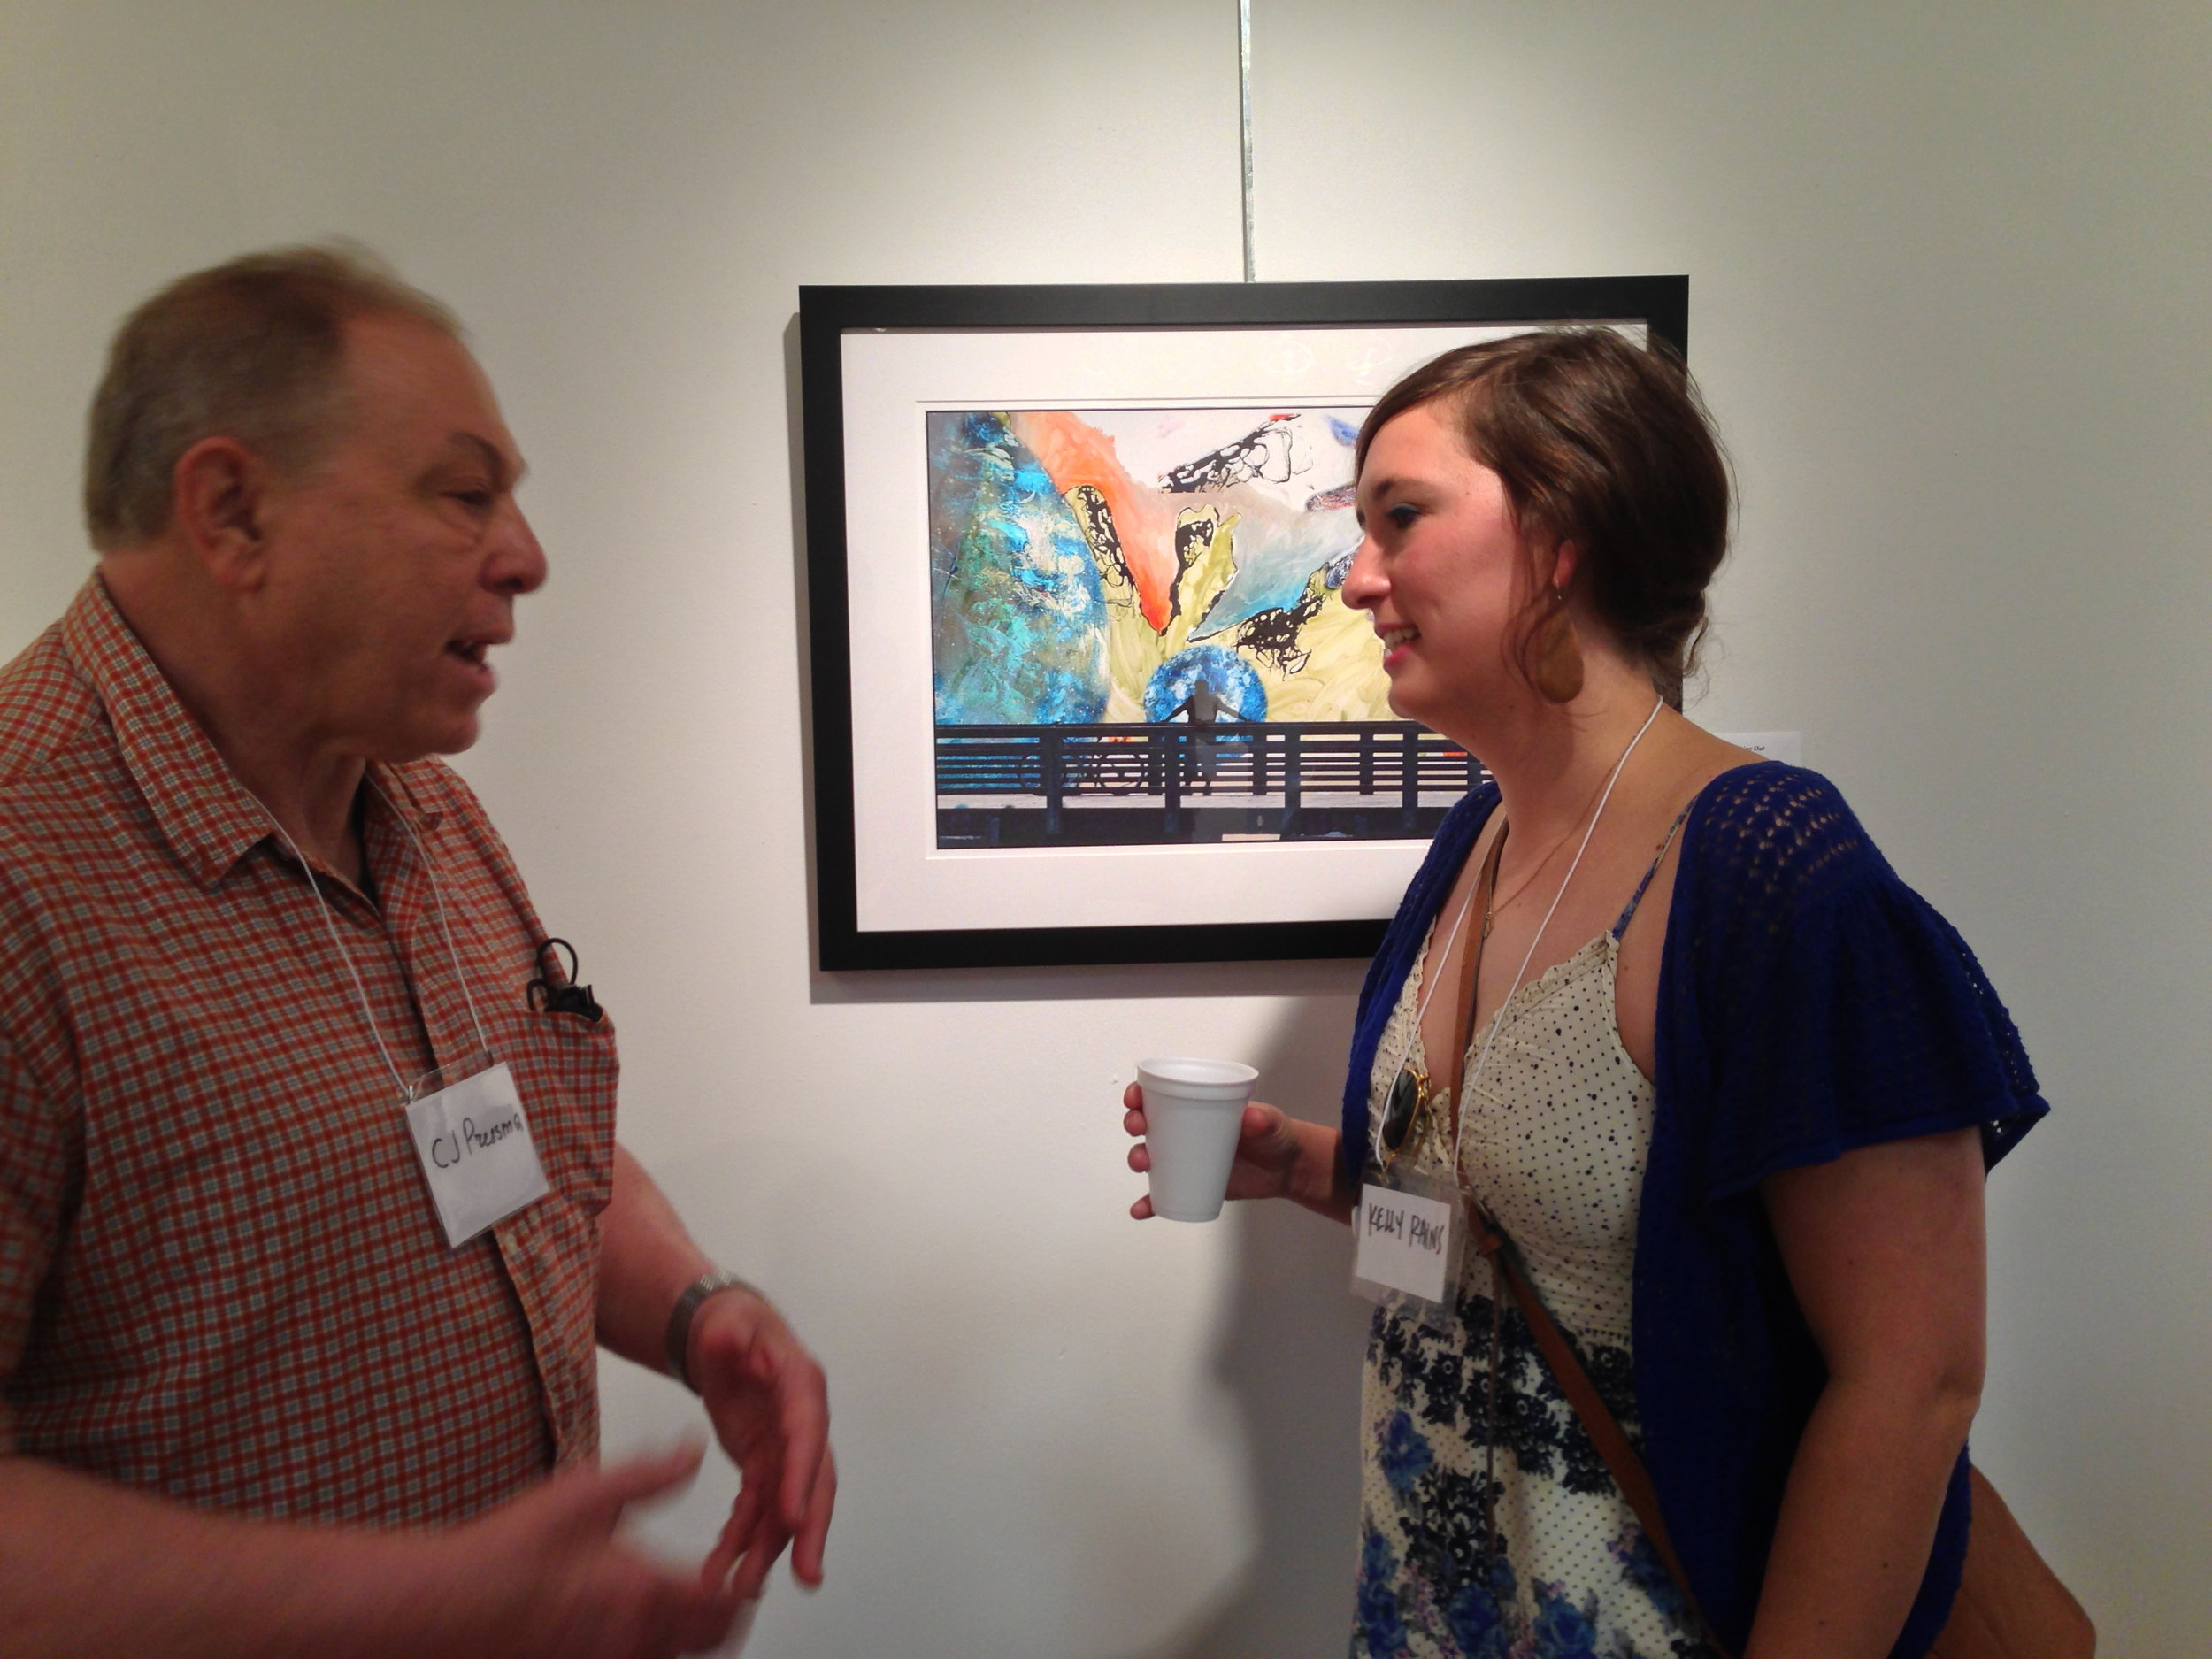 C.J. Pressma & Kelly Rains discuss the project in front of their piece. (Photo courtesy of Kelly Rains.)